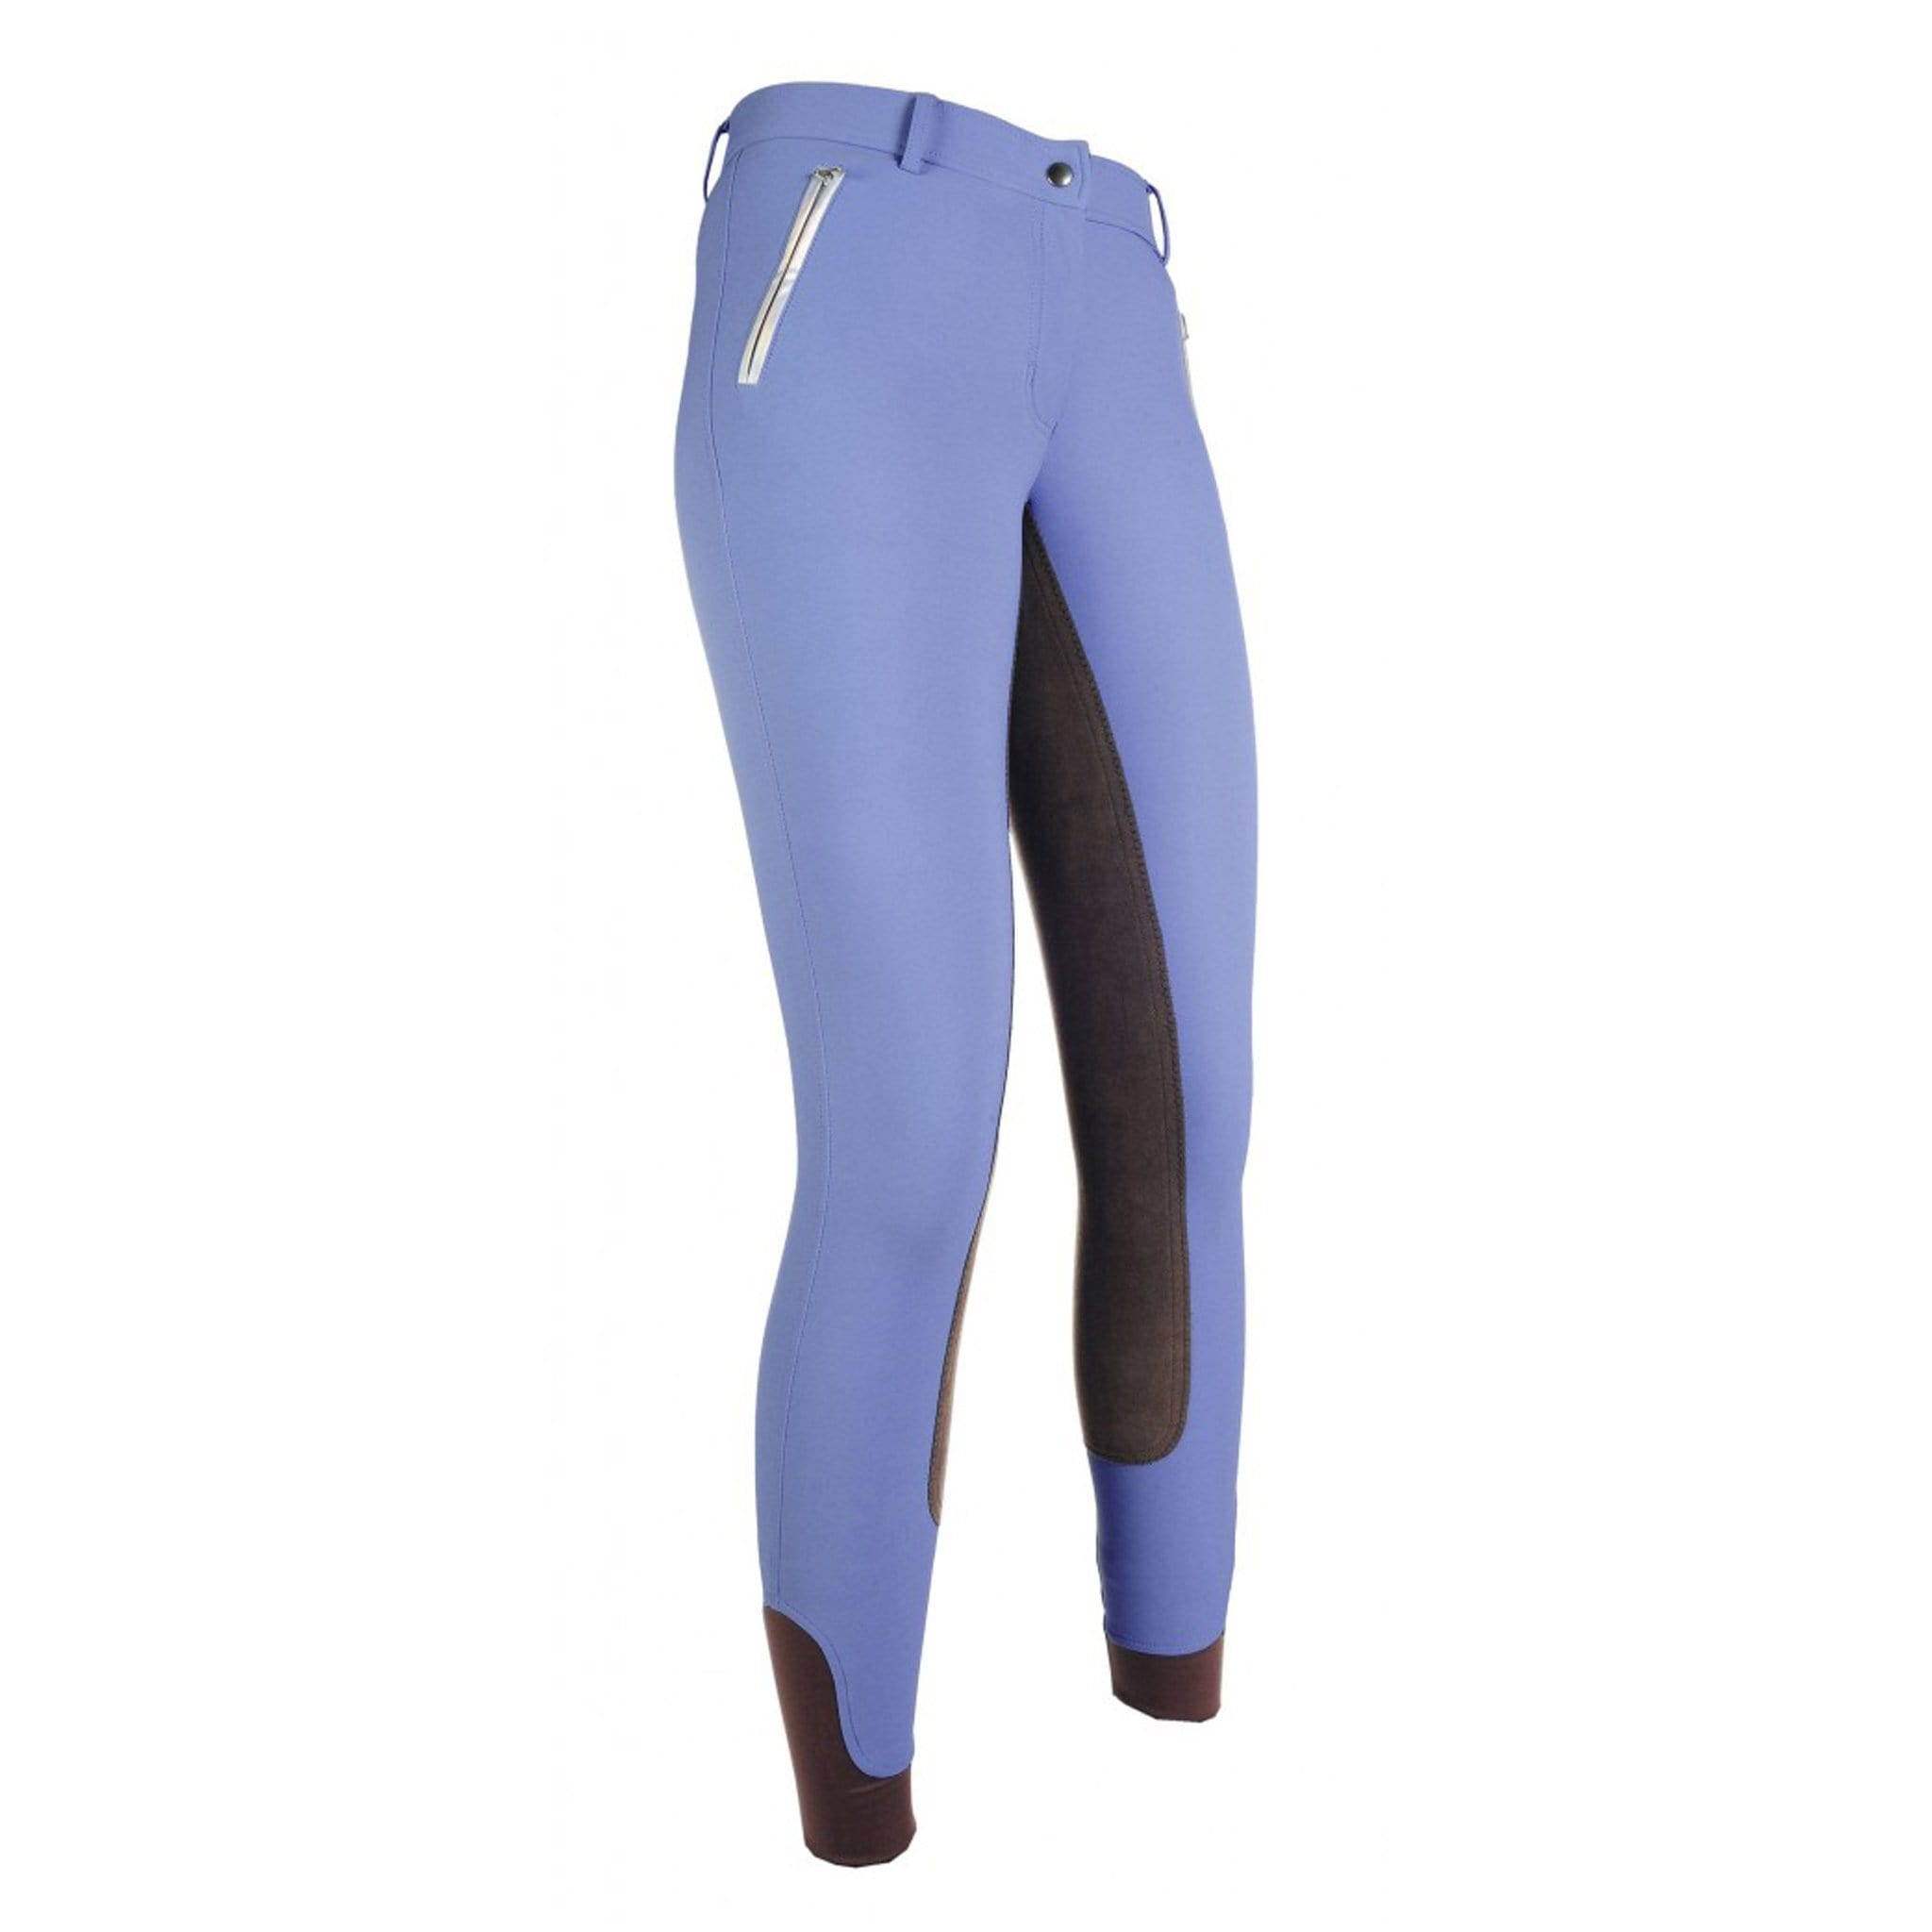 HKM Diamonds LIZ Milky Alos Full Seat Breeches 10326 Smokey Blue Front